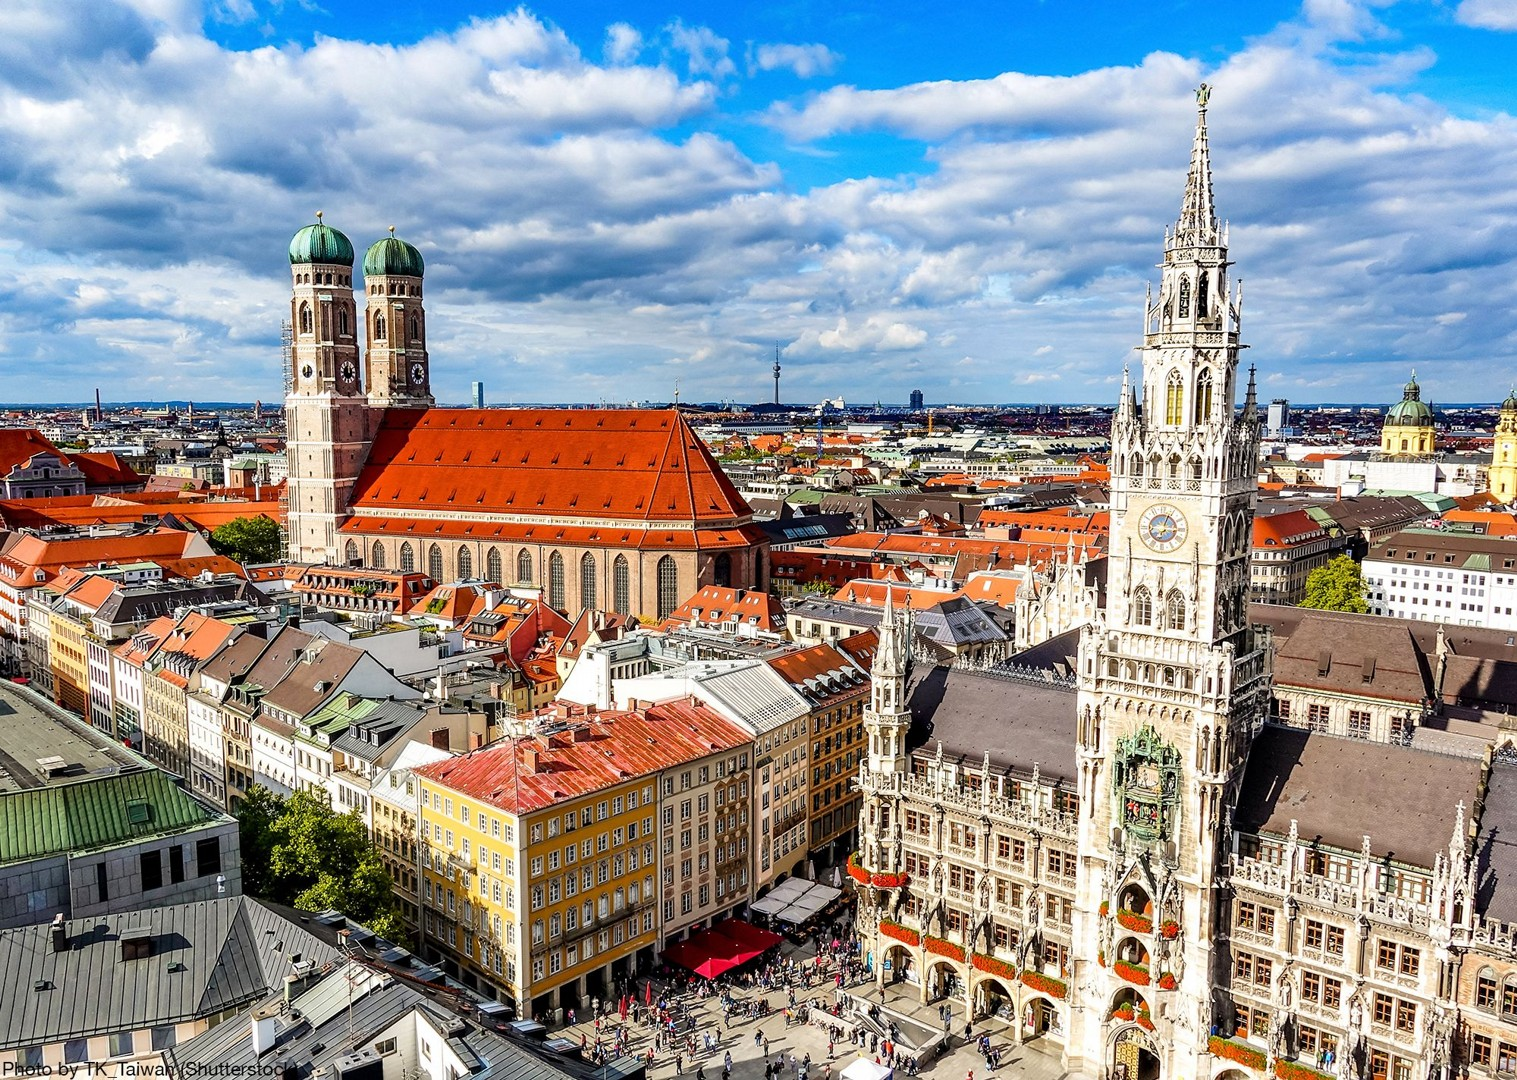 new-town-hall-munich-germany-bike-tour-holiday-self-guided.jpg - Germany - Bavarian Lakes - Self-Guided Leisure Cycling Holiday - Leisure Cycling